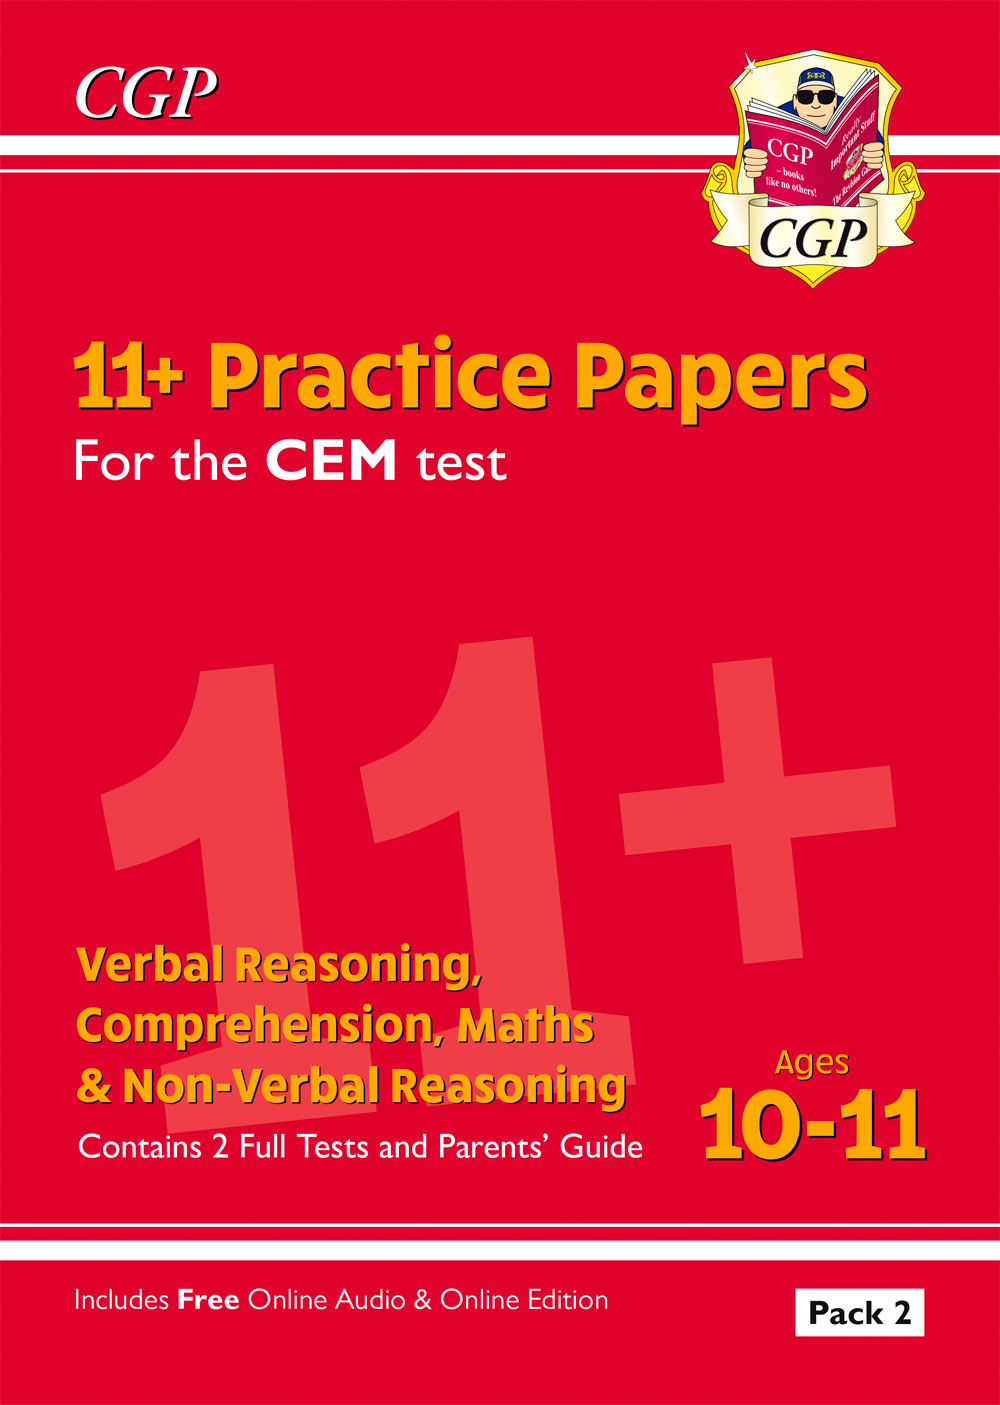 ELP2DE2 - 11+ CEM Practice Papers: Ages 10-11 - Pack 2 (with Parents' Guide & Online Edition)